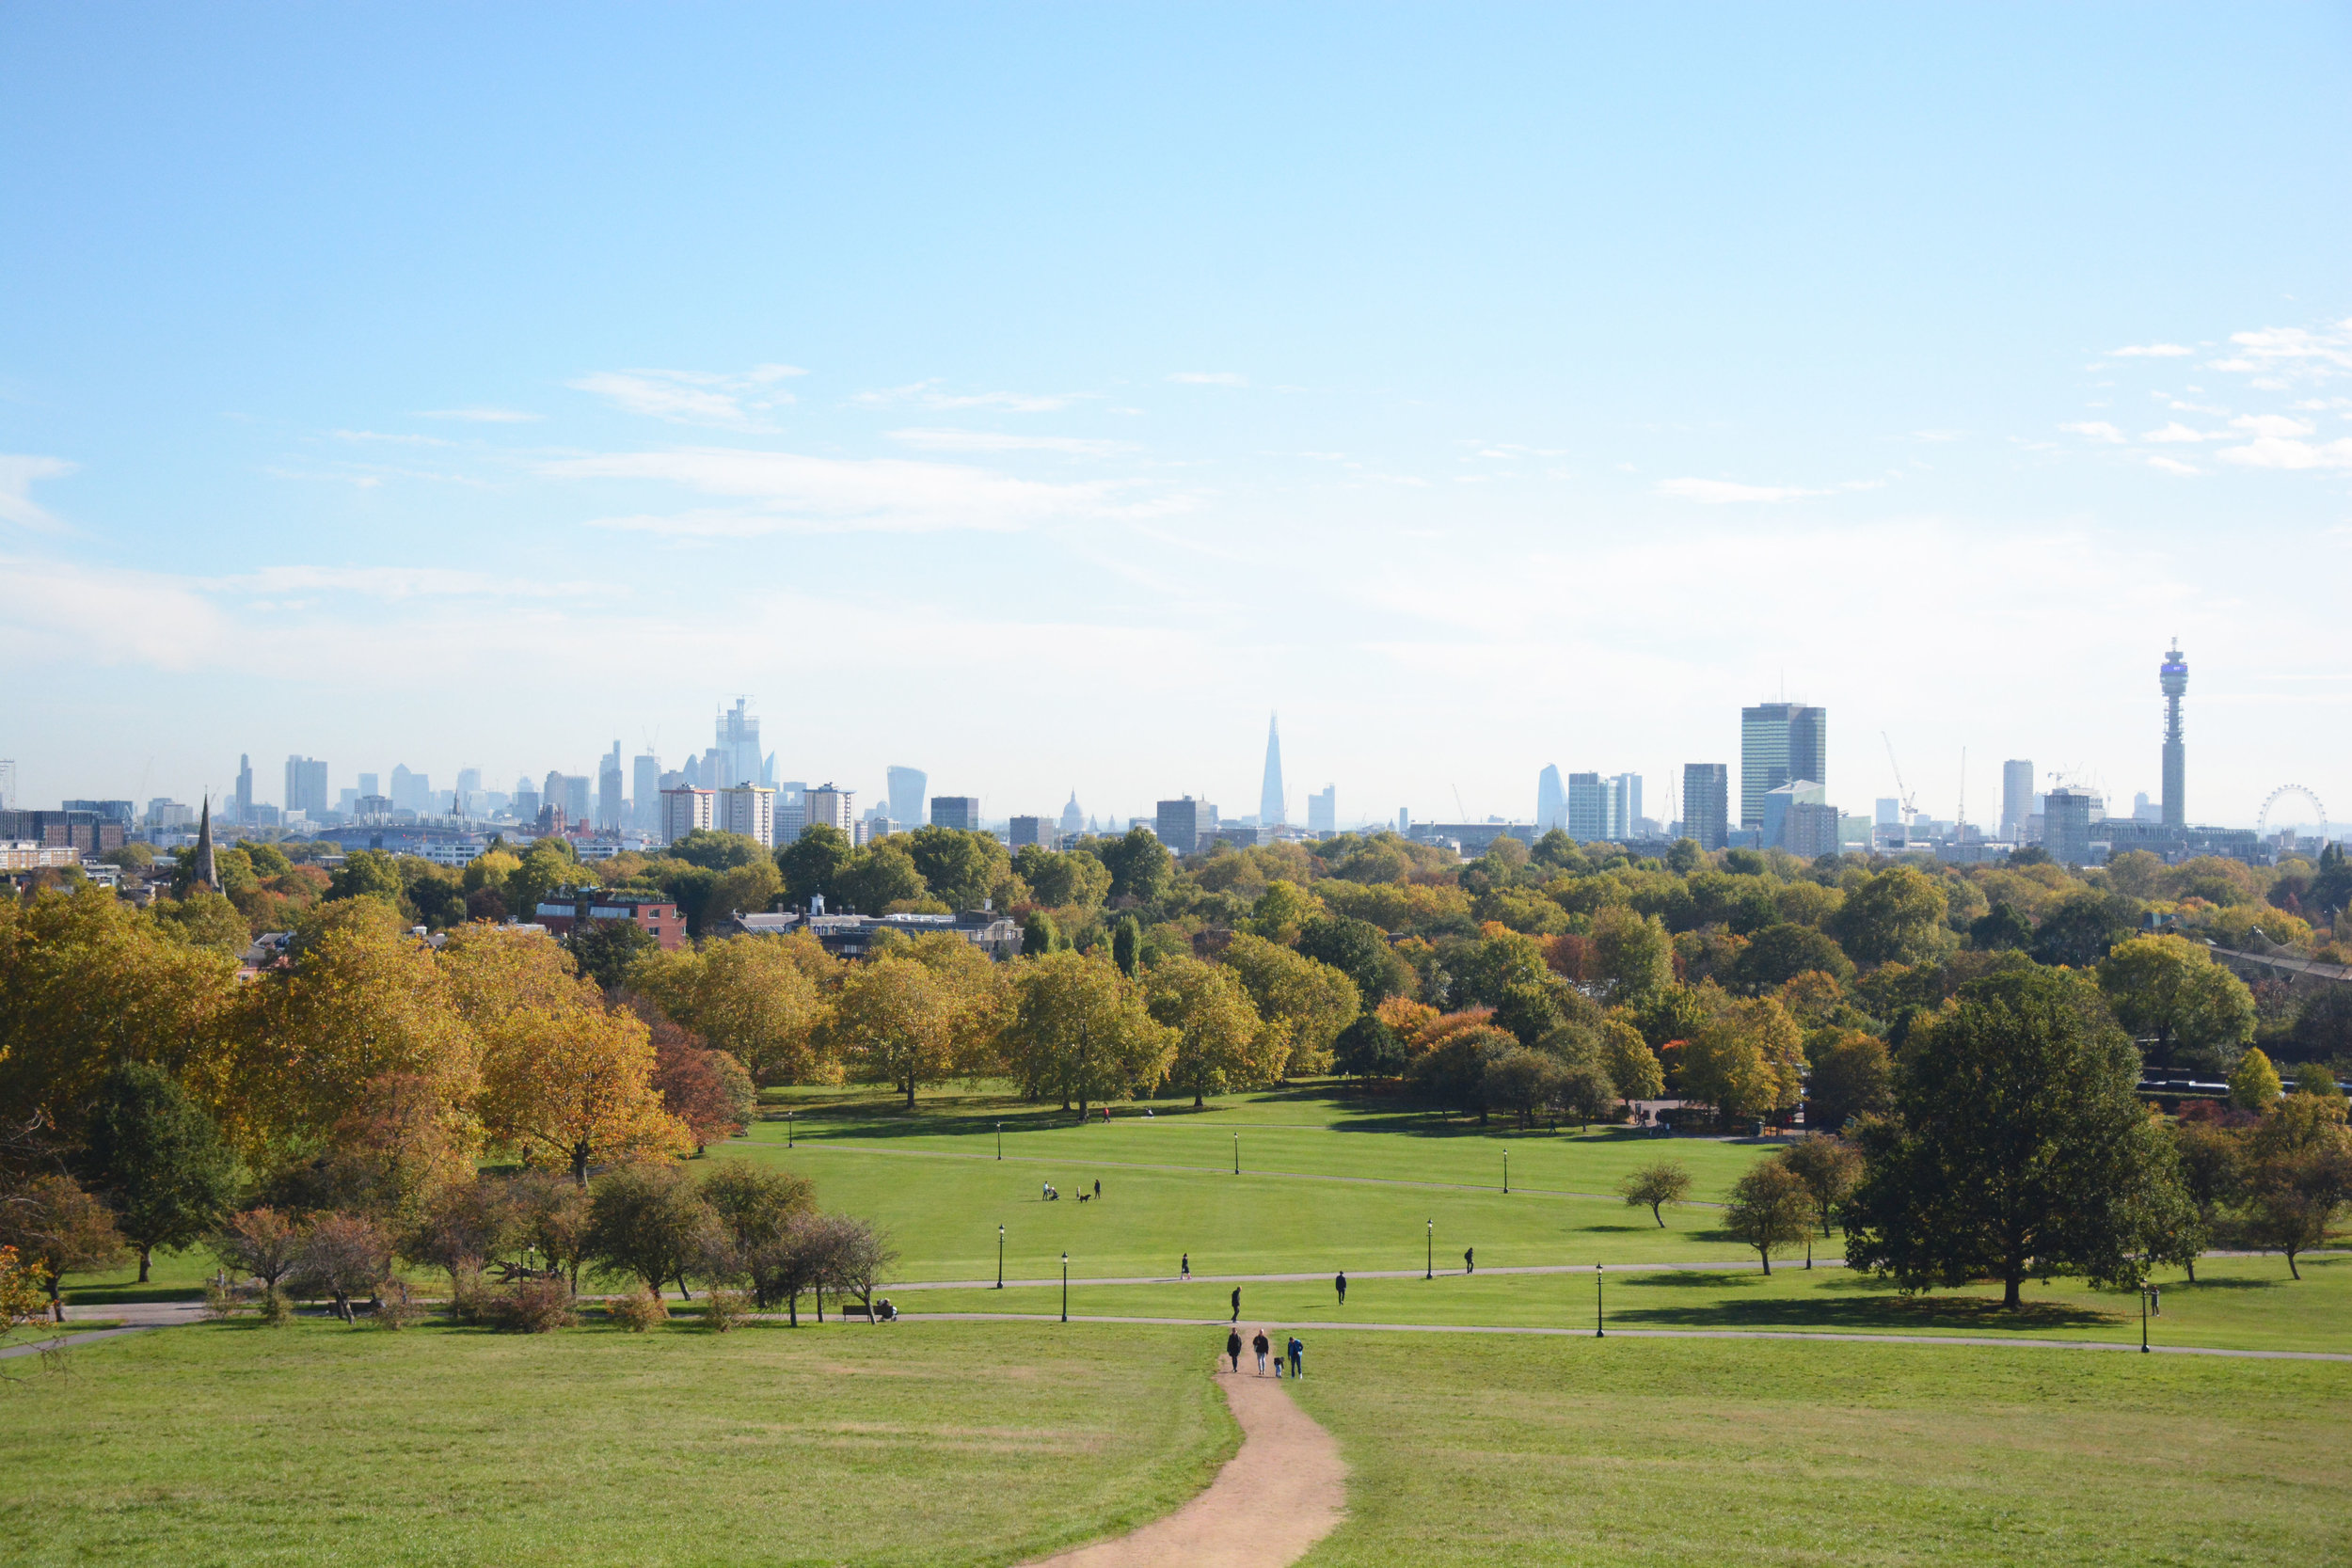 Nature & Skyline views - The experience starts at Regent's Park, what was once King Henry VIII's hunting chase. It is known as the 'jewel in the crown' and is one of London's eight Royal Parks with its beautiful gardens, a lake, the London Zoo, London Central Mosque and much more. From Regent's Park we will go to the beautiful Primrose Hill, from where you will enjoy a breathtaking skyline view over London whilst listening to the many songs that were inspired by this view, from the Beatles, to Blur, to Red Hot Chili Peppers, to John Martin.